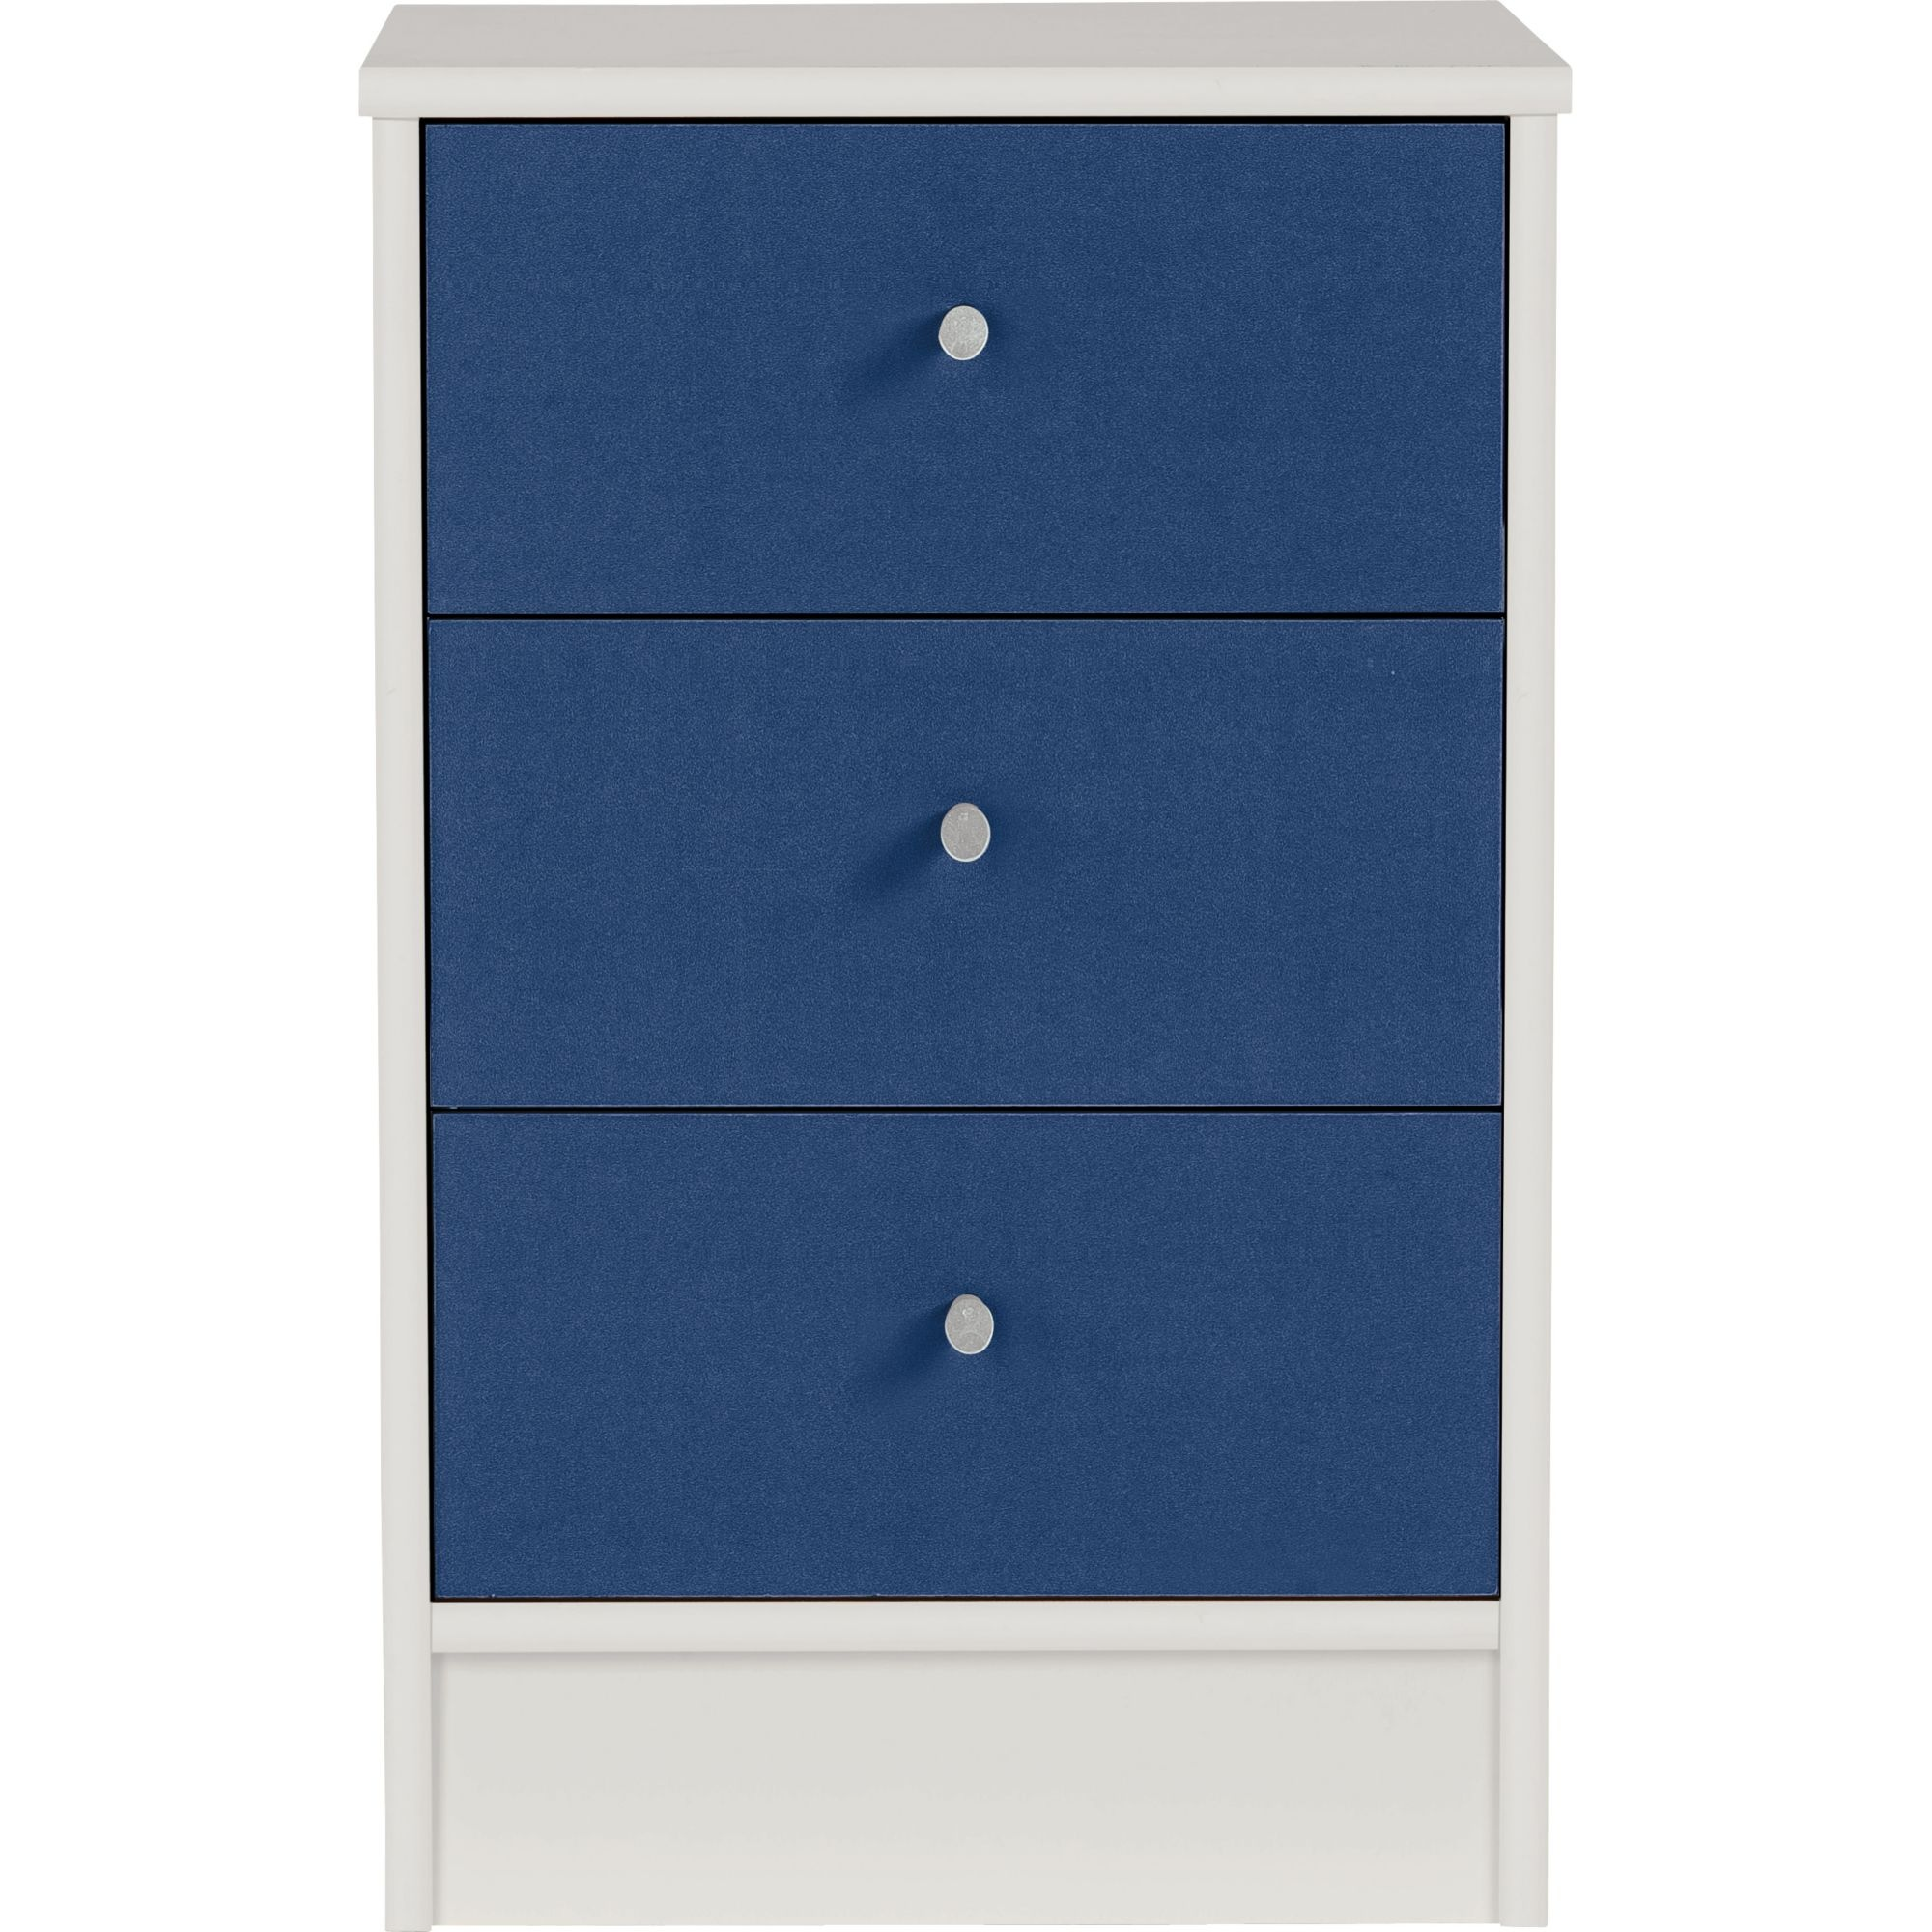 Malibu 3 Drawer Bedside Chest Of Draws Blue On White Table